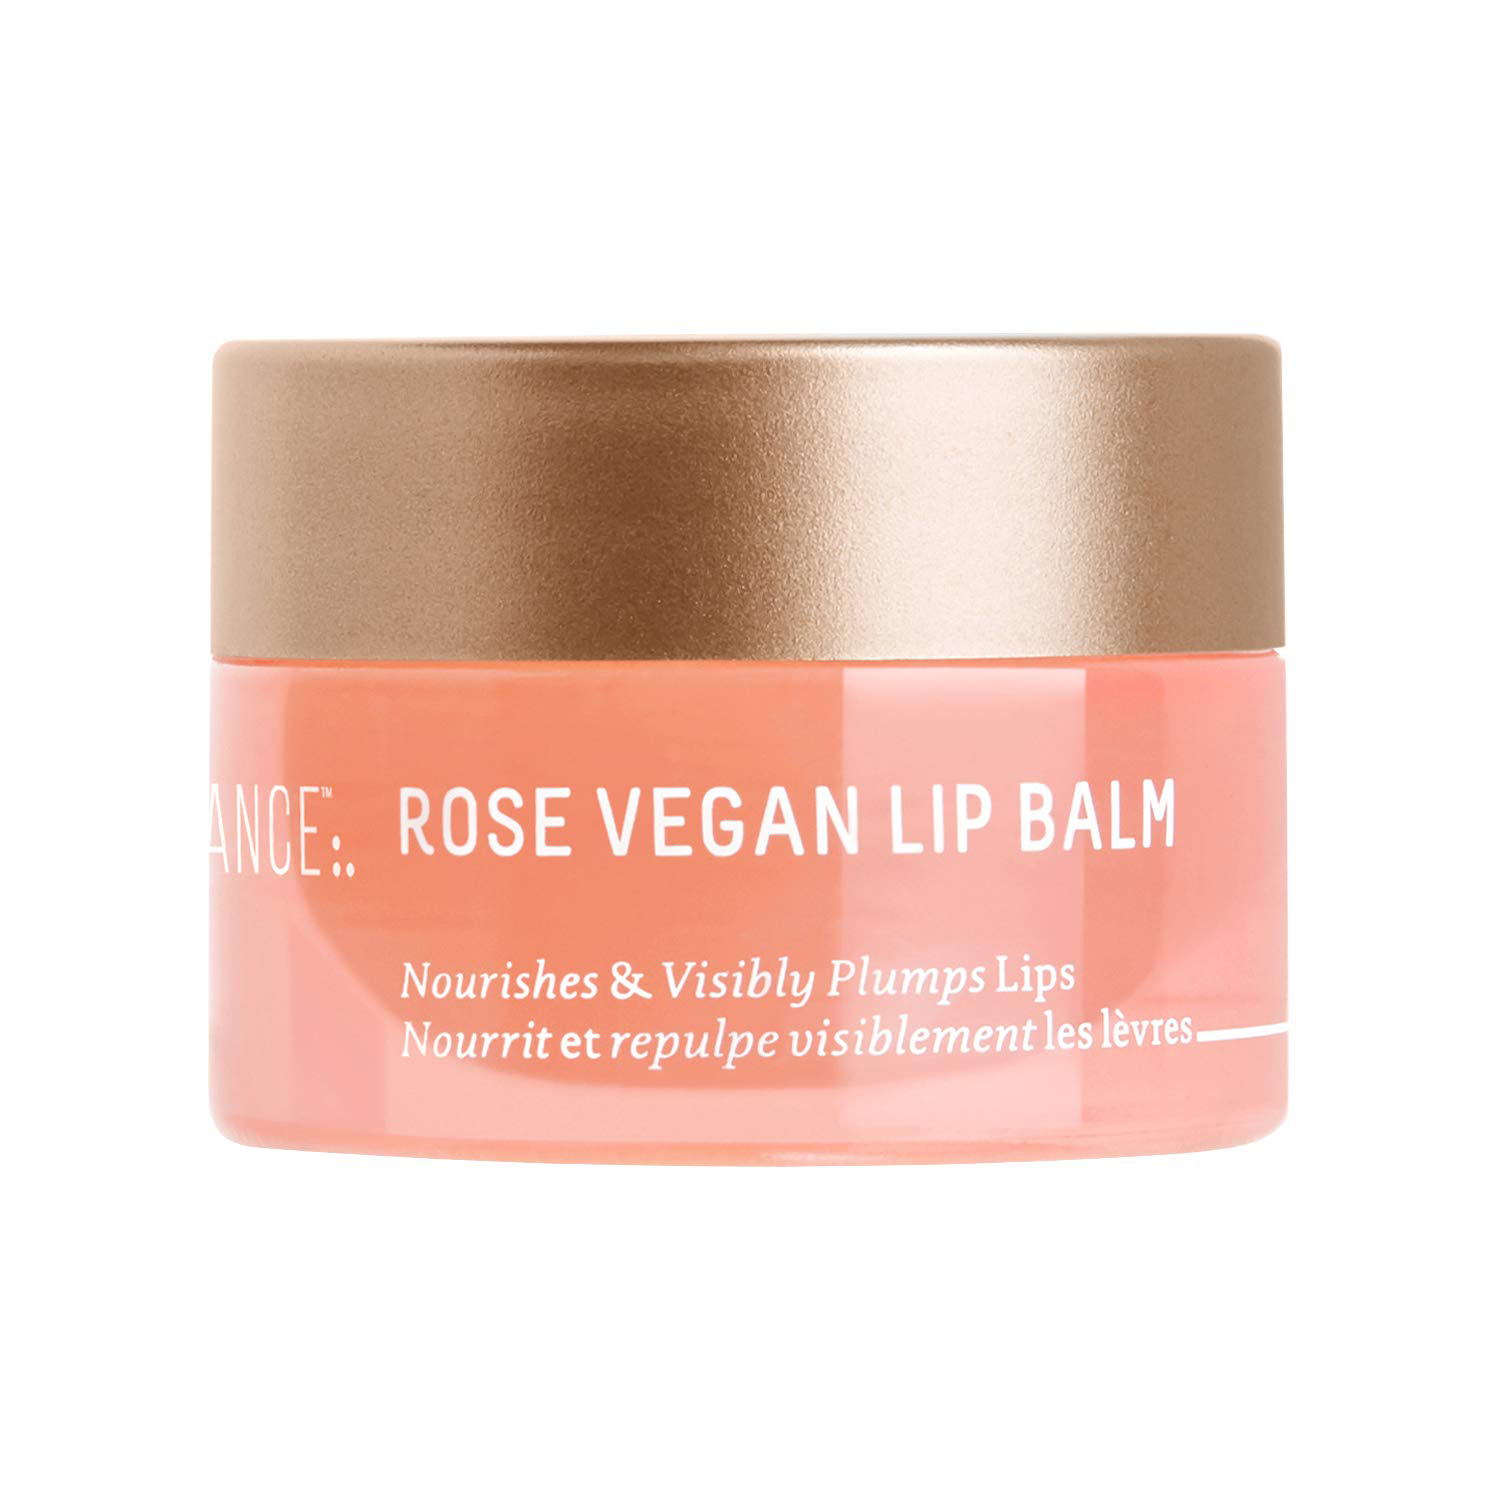 SQUALANE + ROSE VEGAN LIP BALM